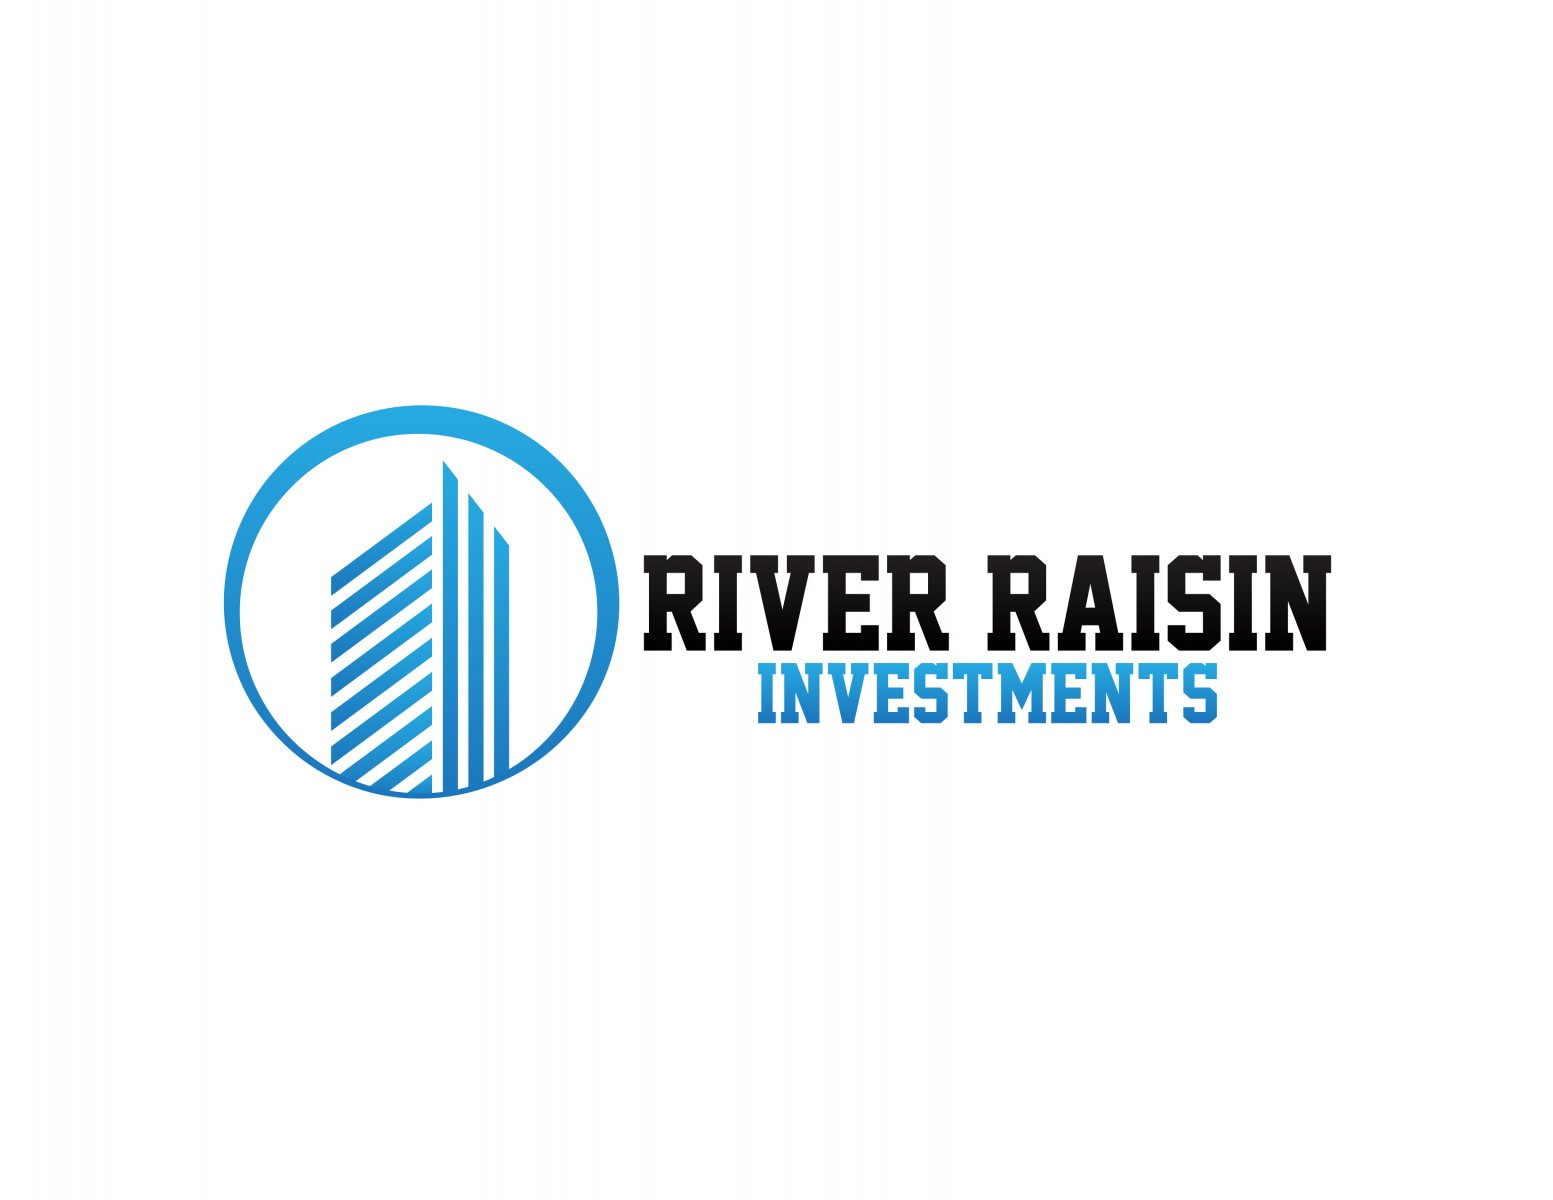 River Raisin Investments logo